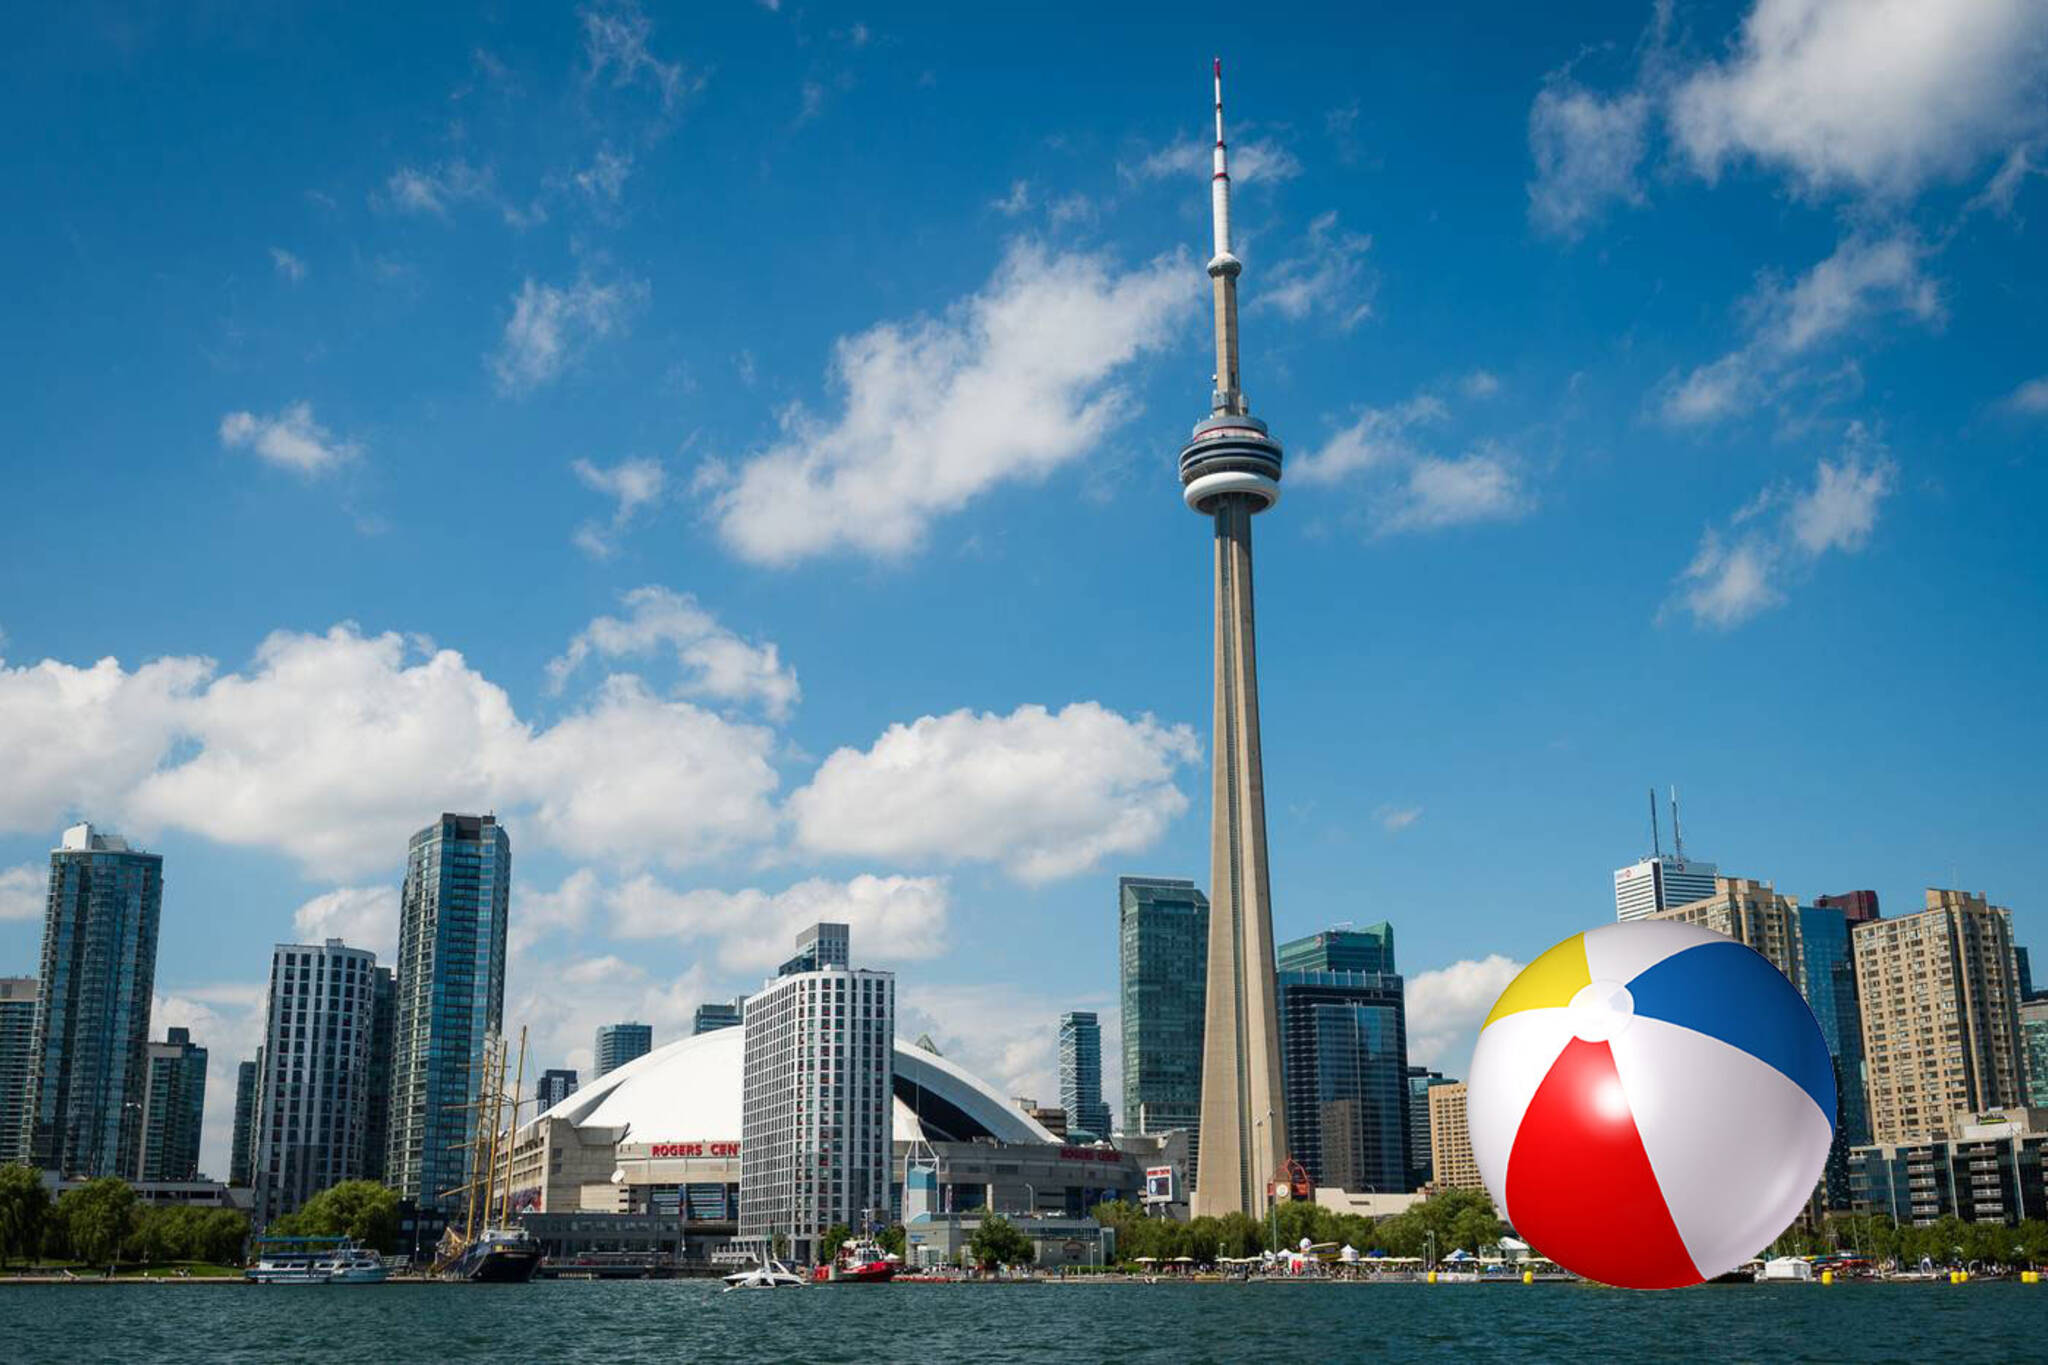 Toronto Is Getting A Giant Beach Ball On The Waterfront